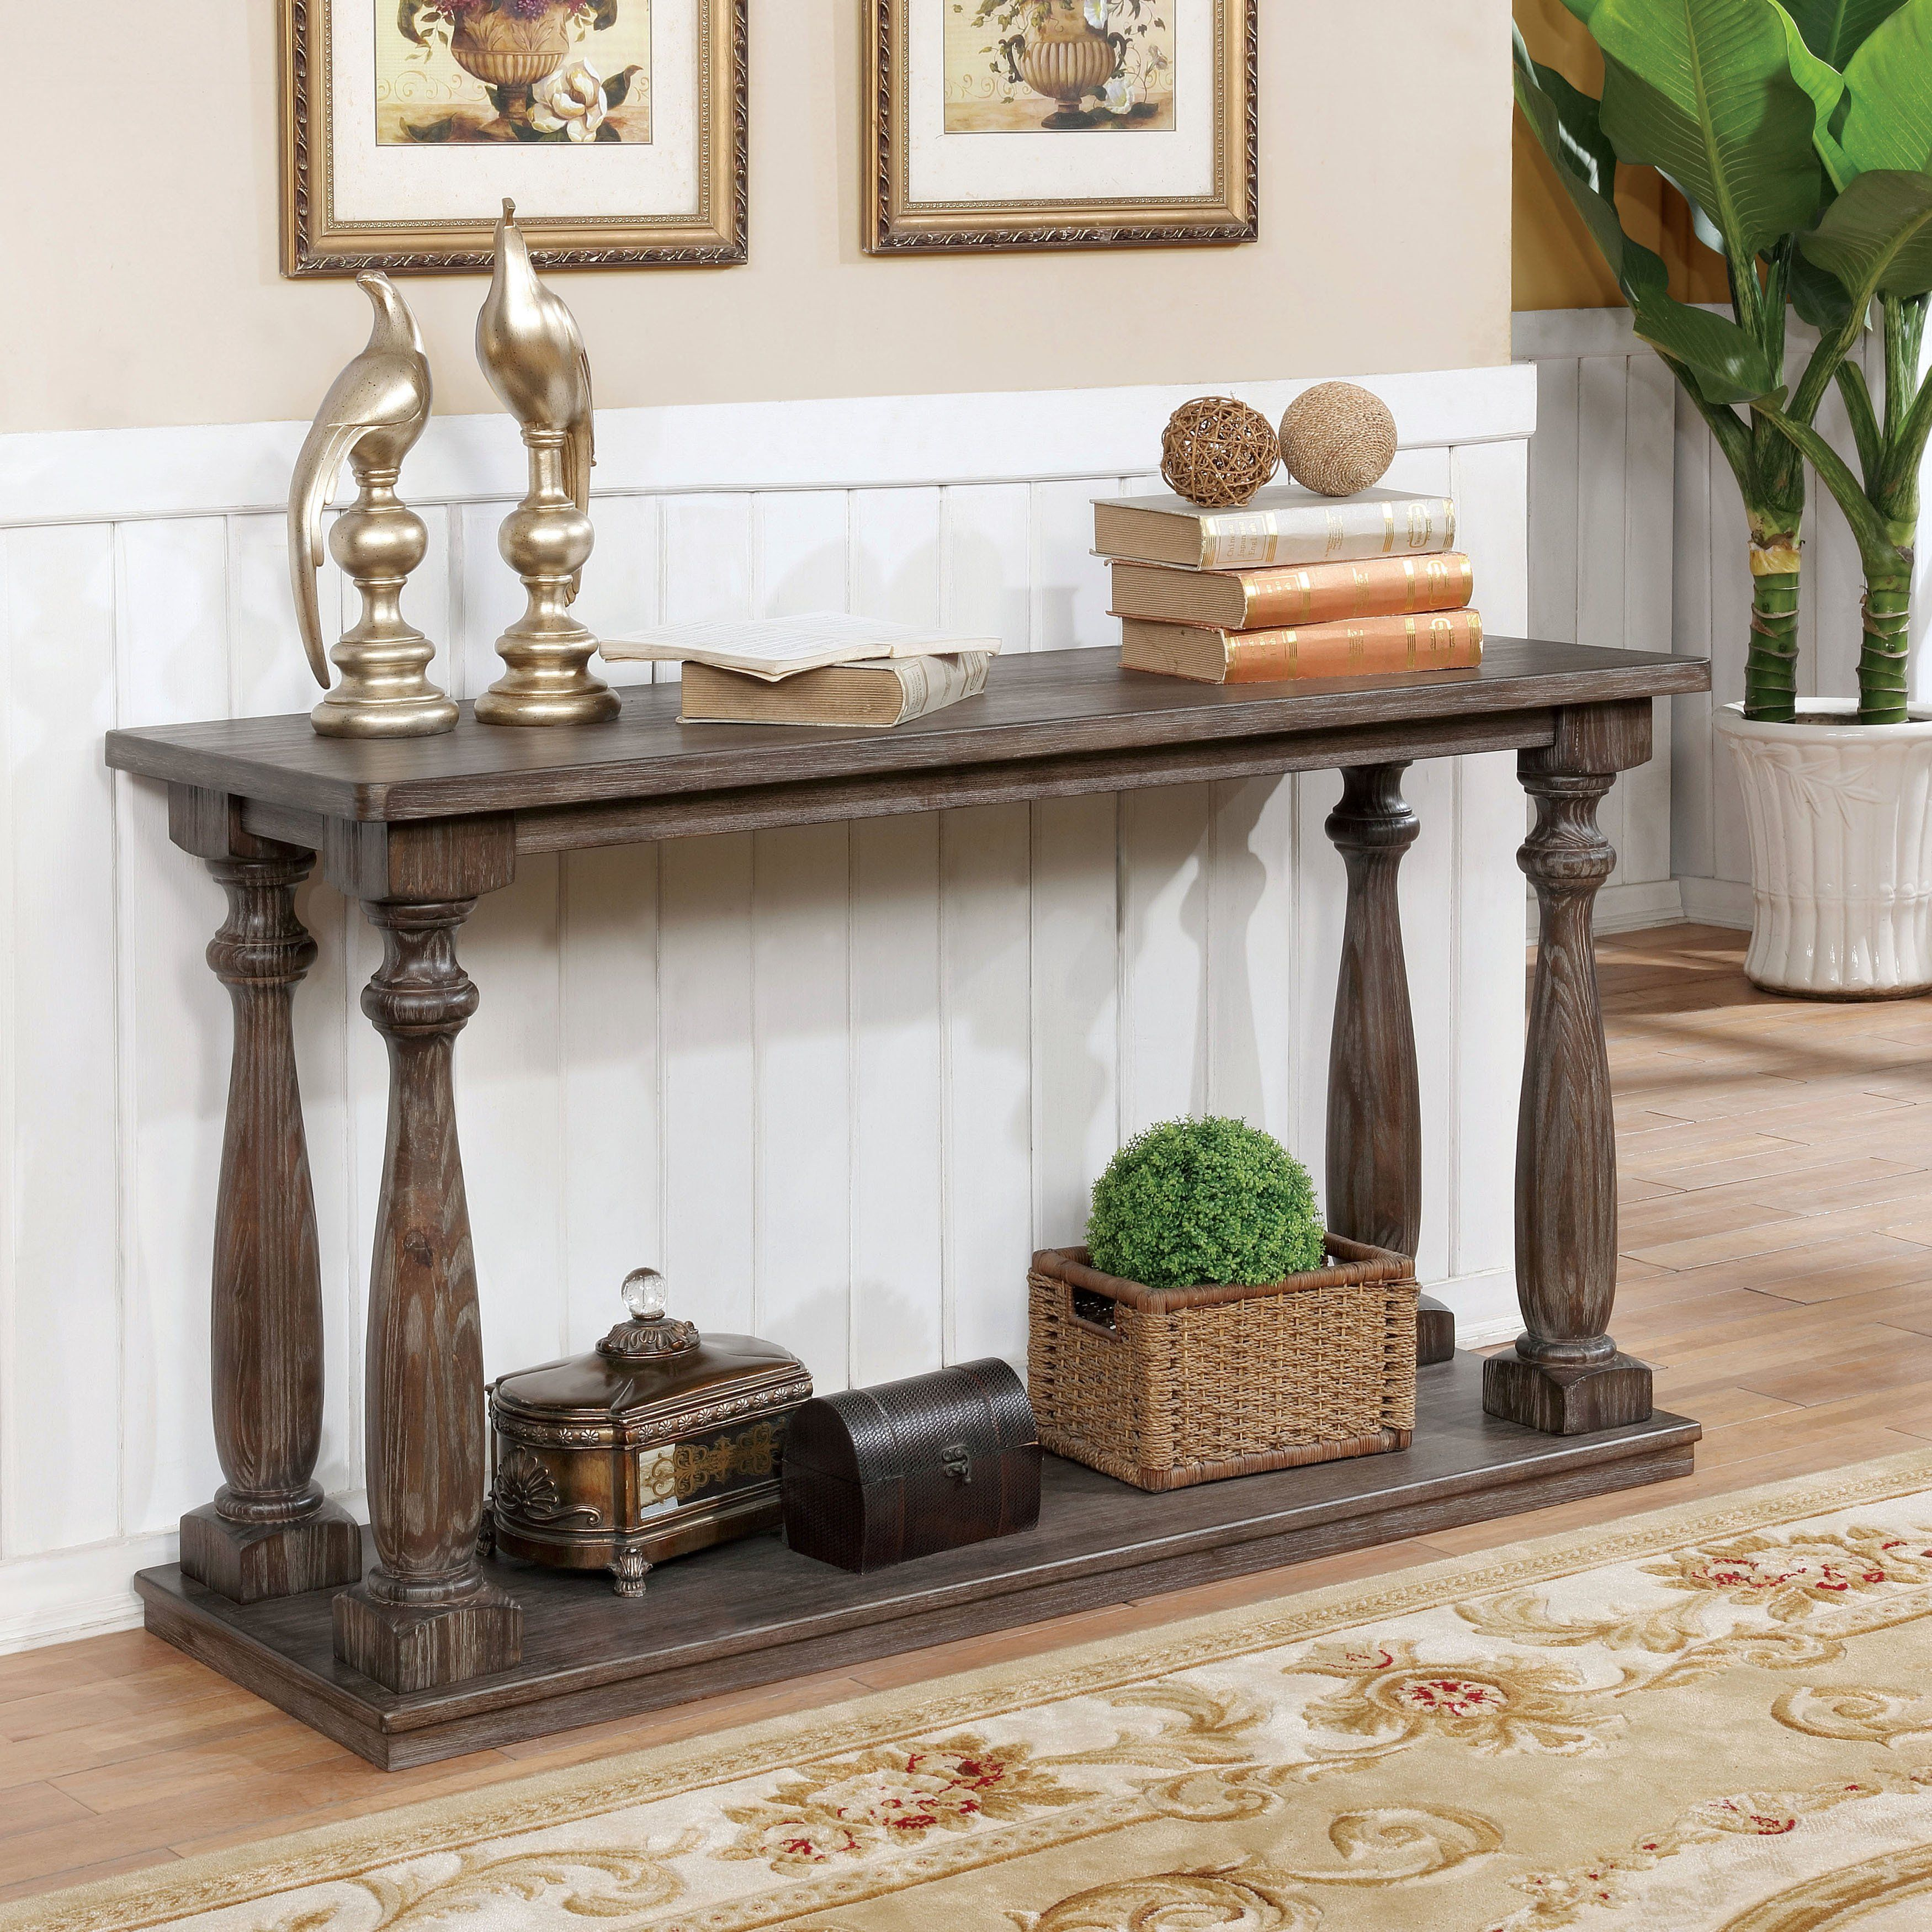 Shop Furniture Of America Jessa Rustic Country Style Open 54 Inch Wood Sofa Table On Sale Free Shipping Toda Rustic Furniture Country Sofas Wood Sofa Table